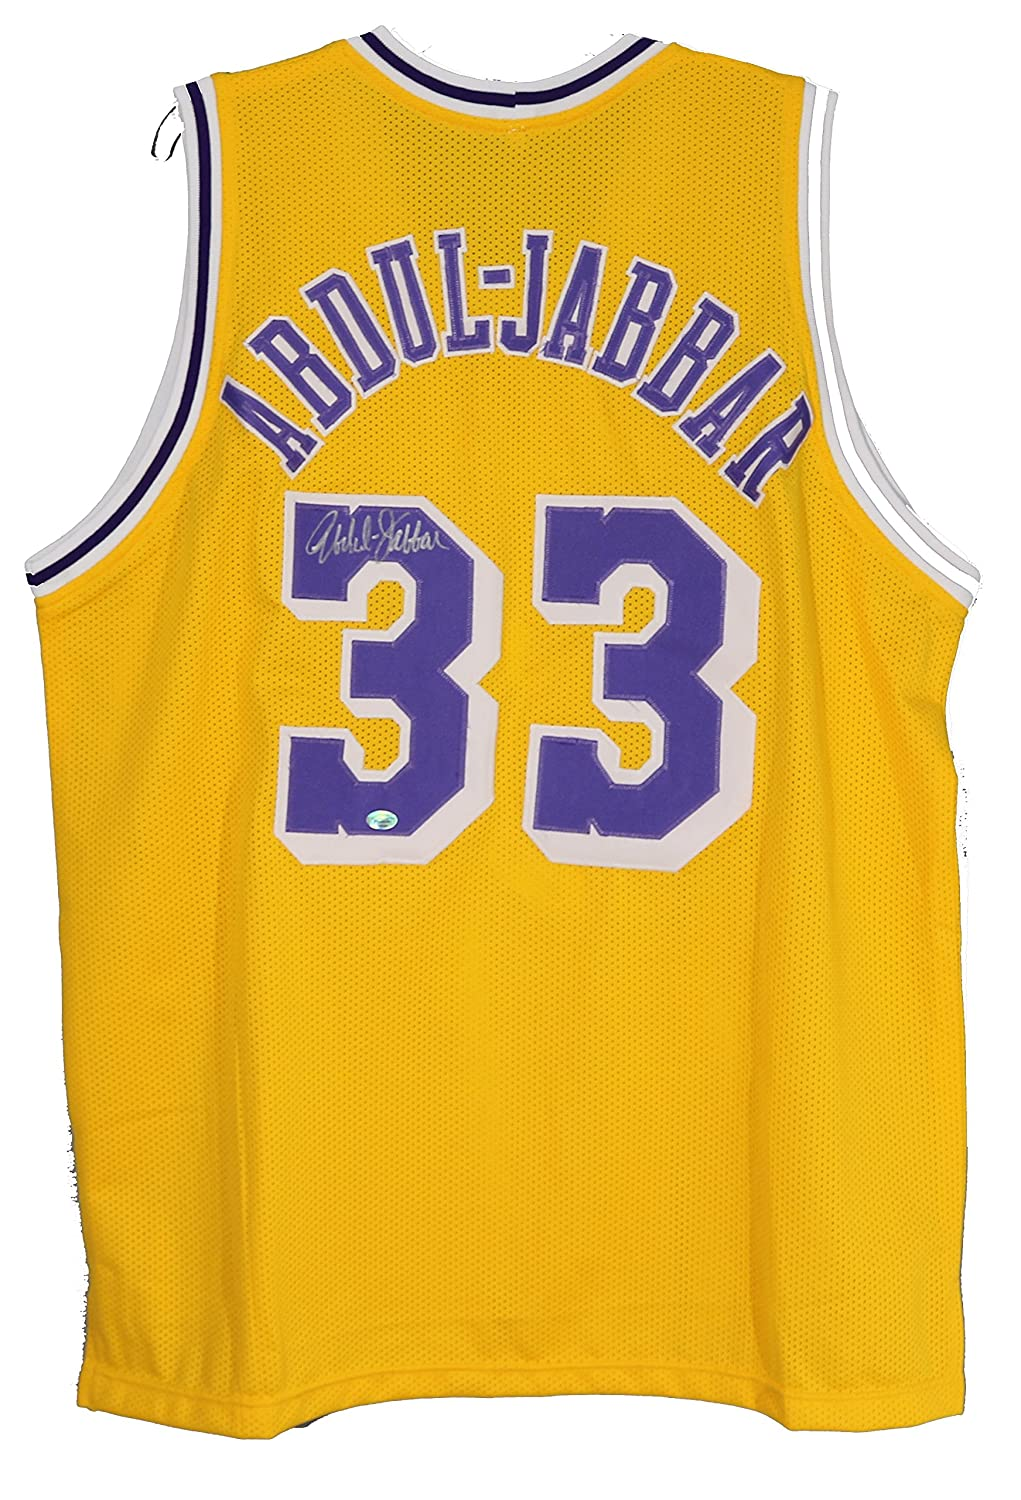 2319baba419 Kareem Abdul Jabbar Los Angeles Lakers Signed Autographed Yellow  33 Custom  Jersey at Amazon s Sports Collectibles Store